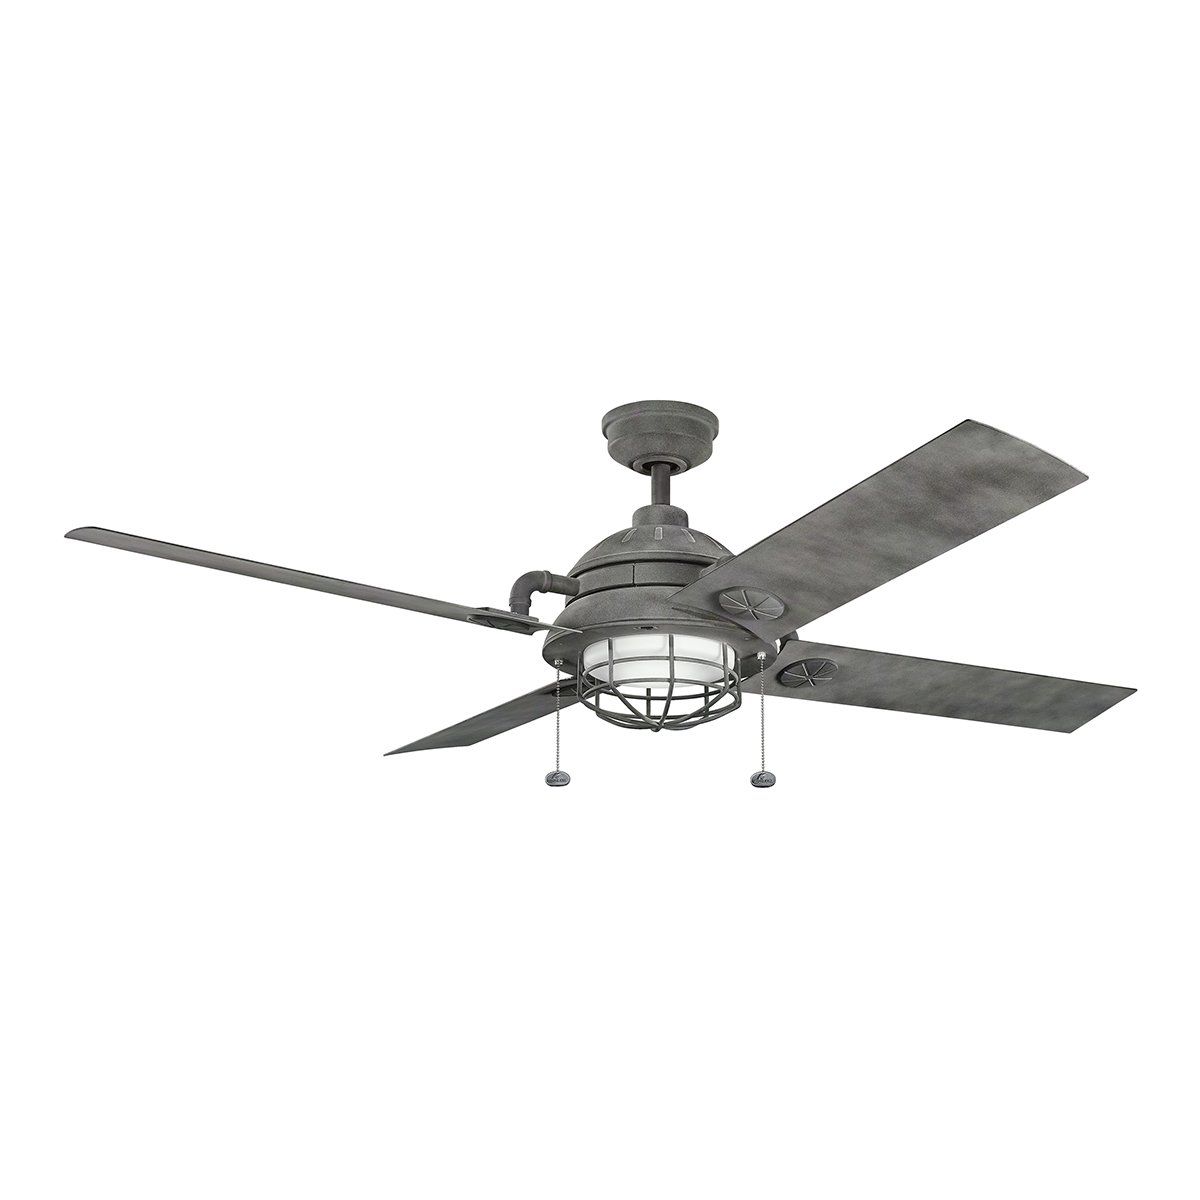 Kichler 310136DBK, Ceiling Fan Distressed Black 65